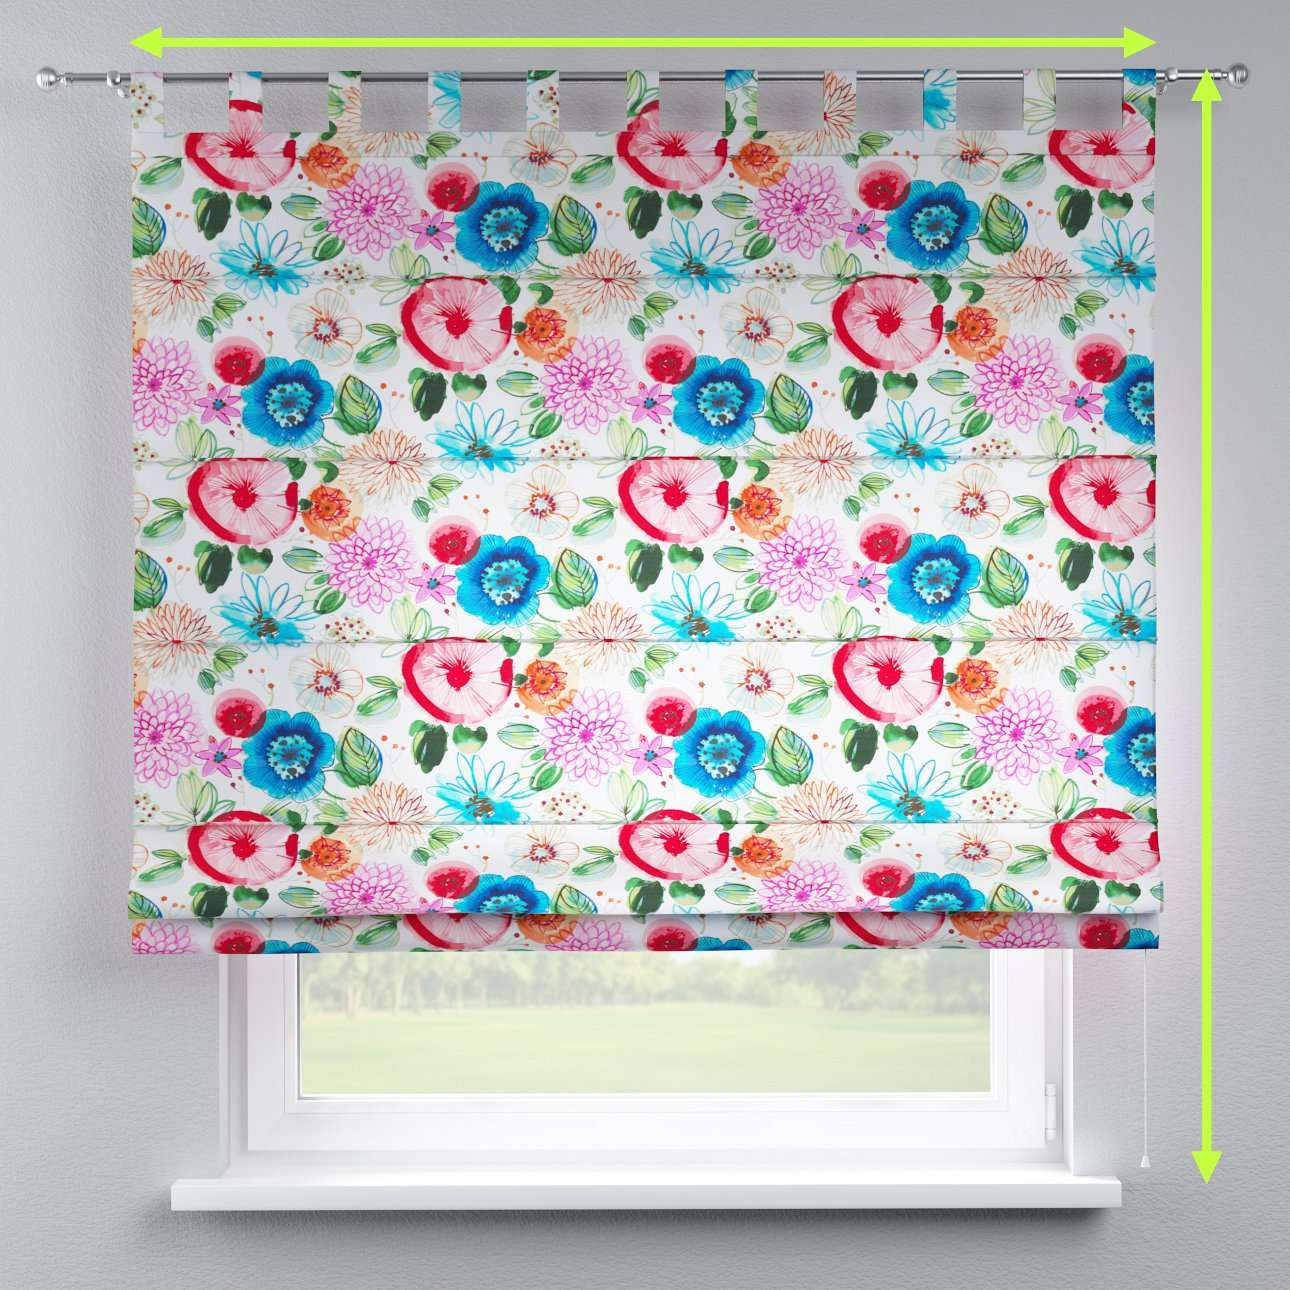 Verona tab top roman blind in collection New Art, fabric: 140-24